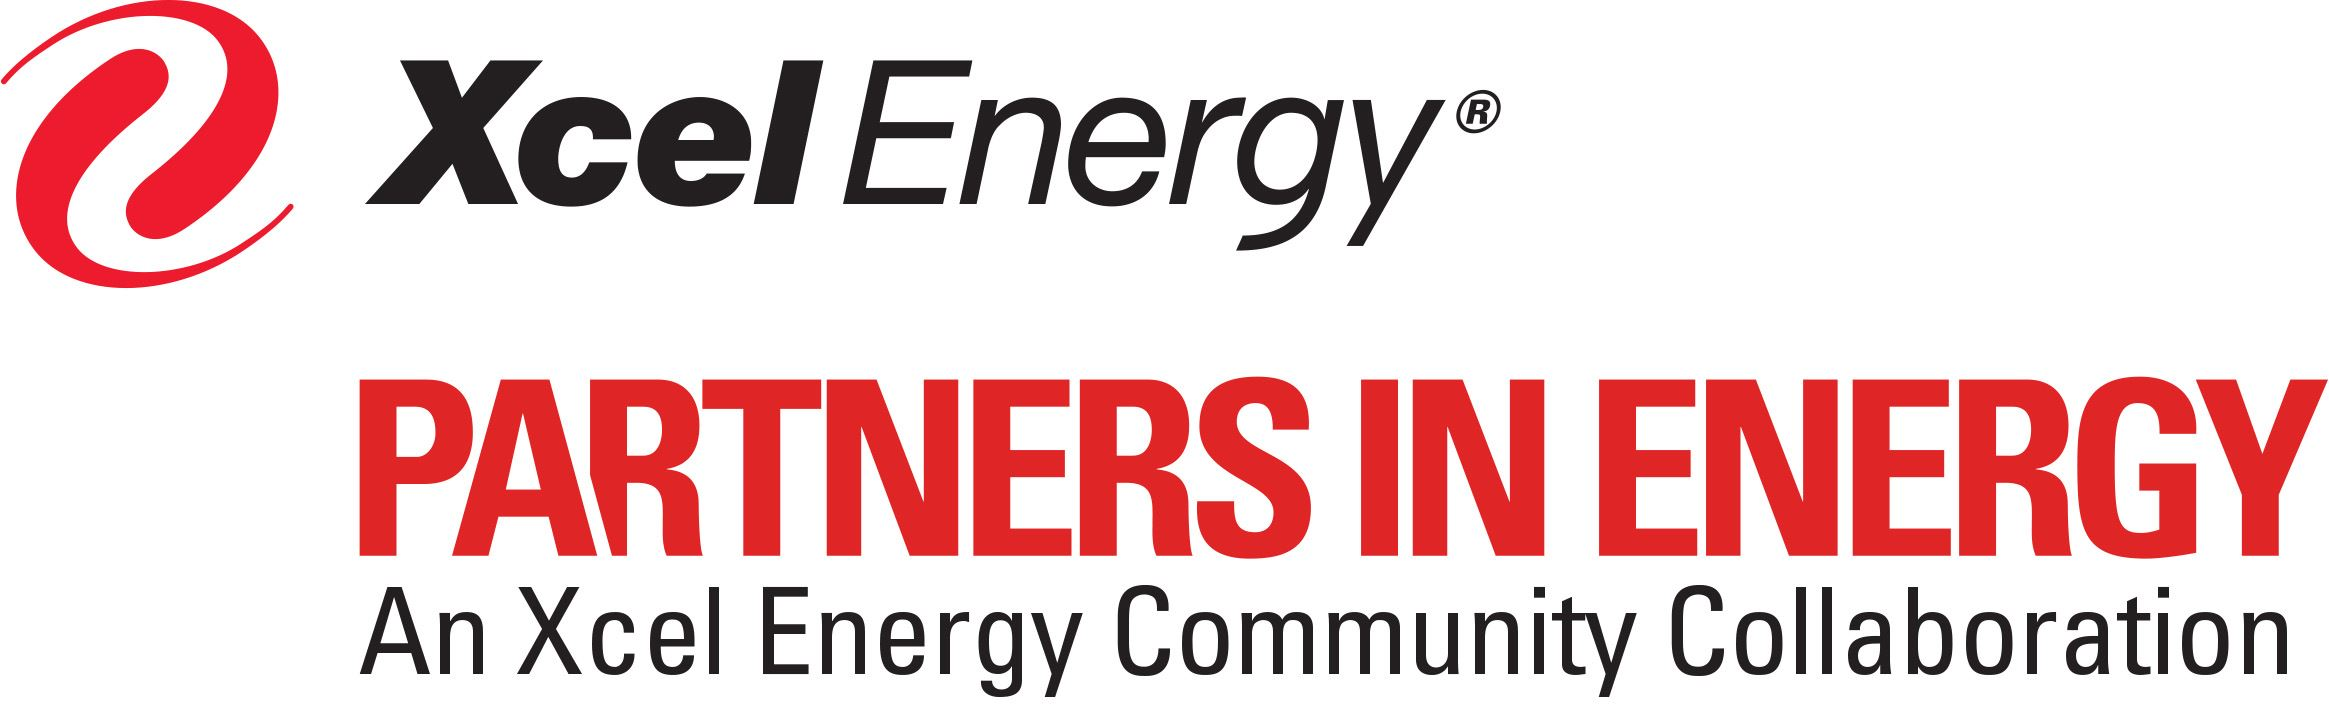 Partners-in-Energy-logo